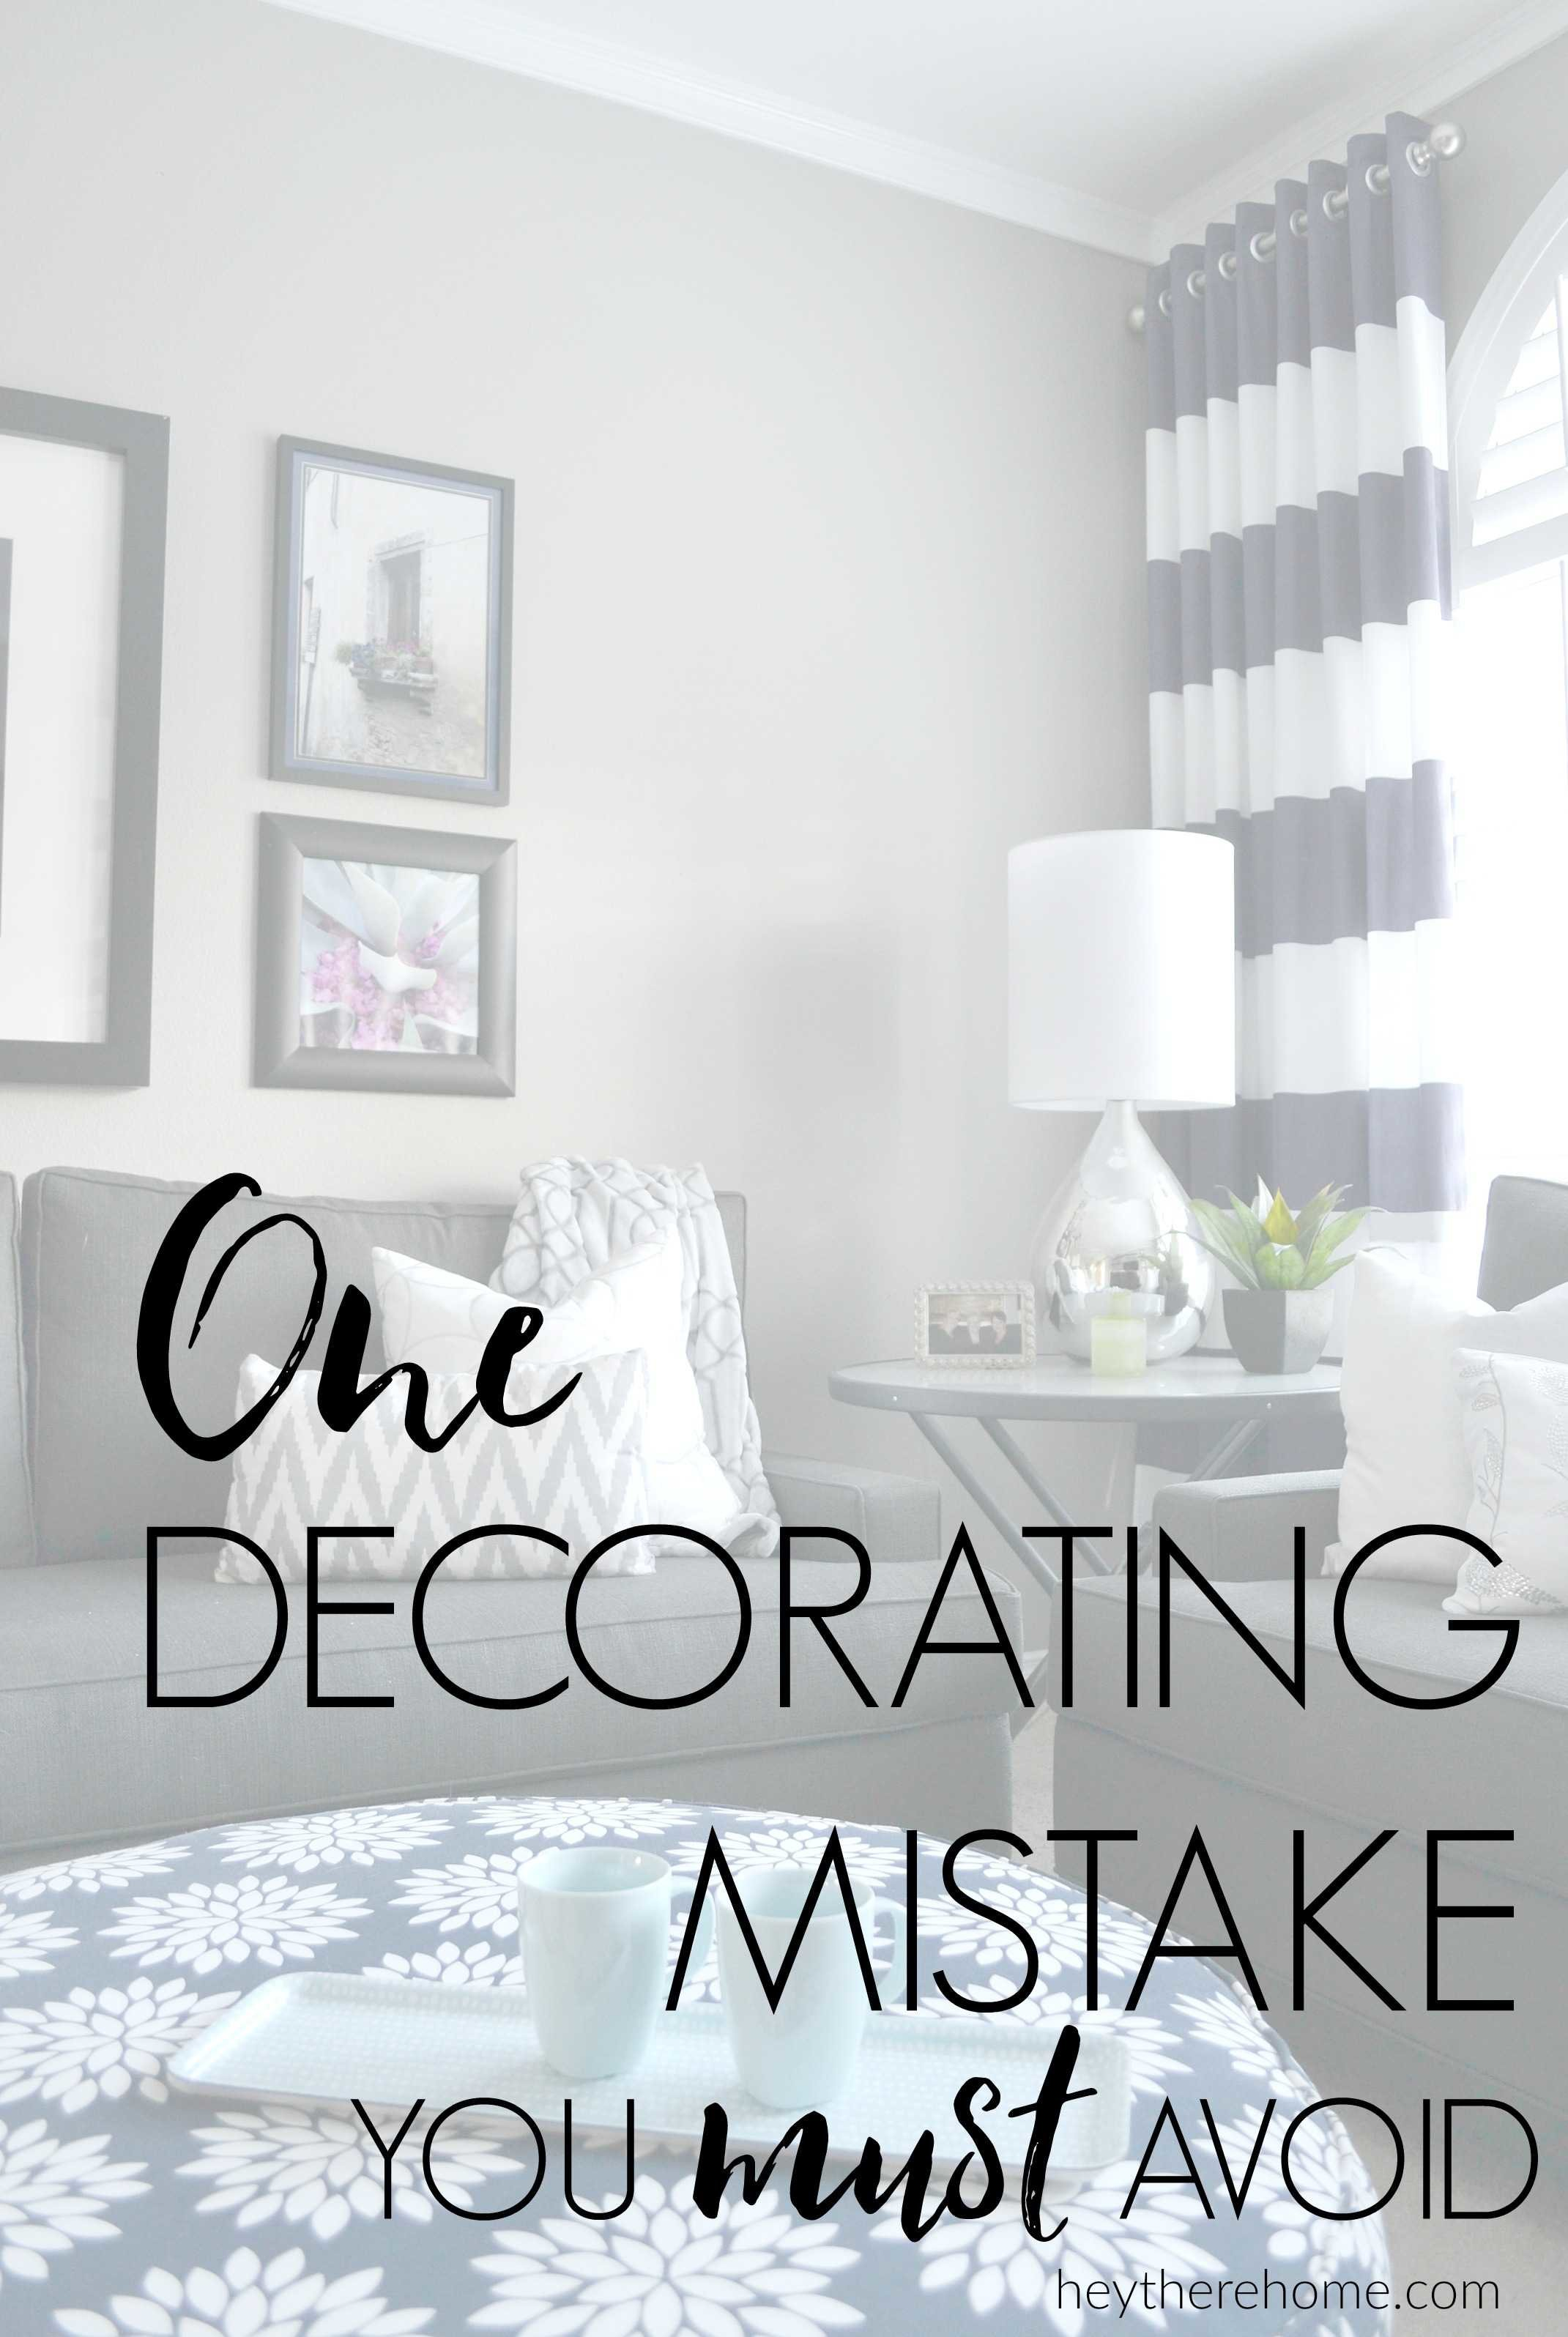 One Decorating Mistake You Must Avoid